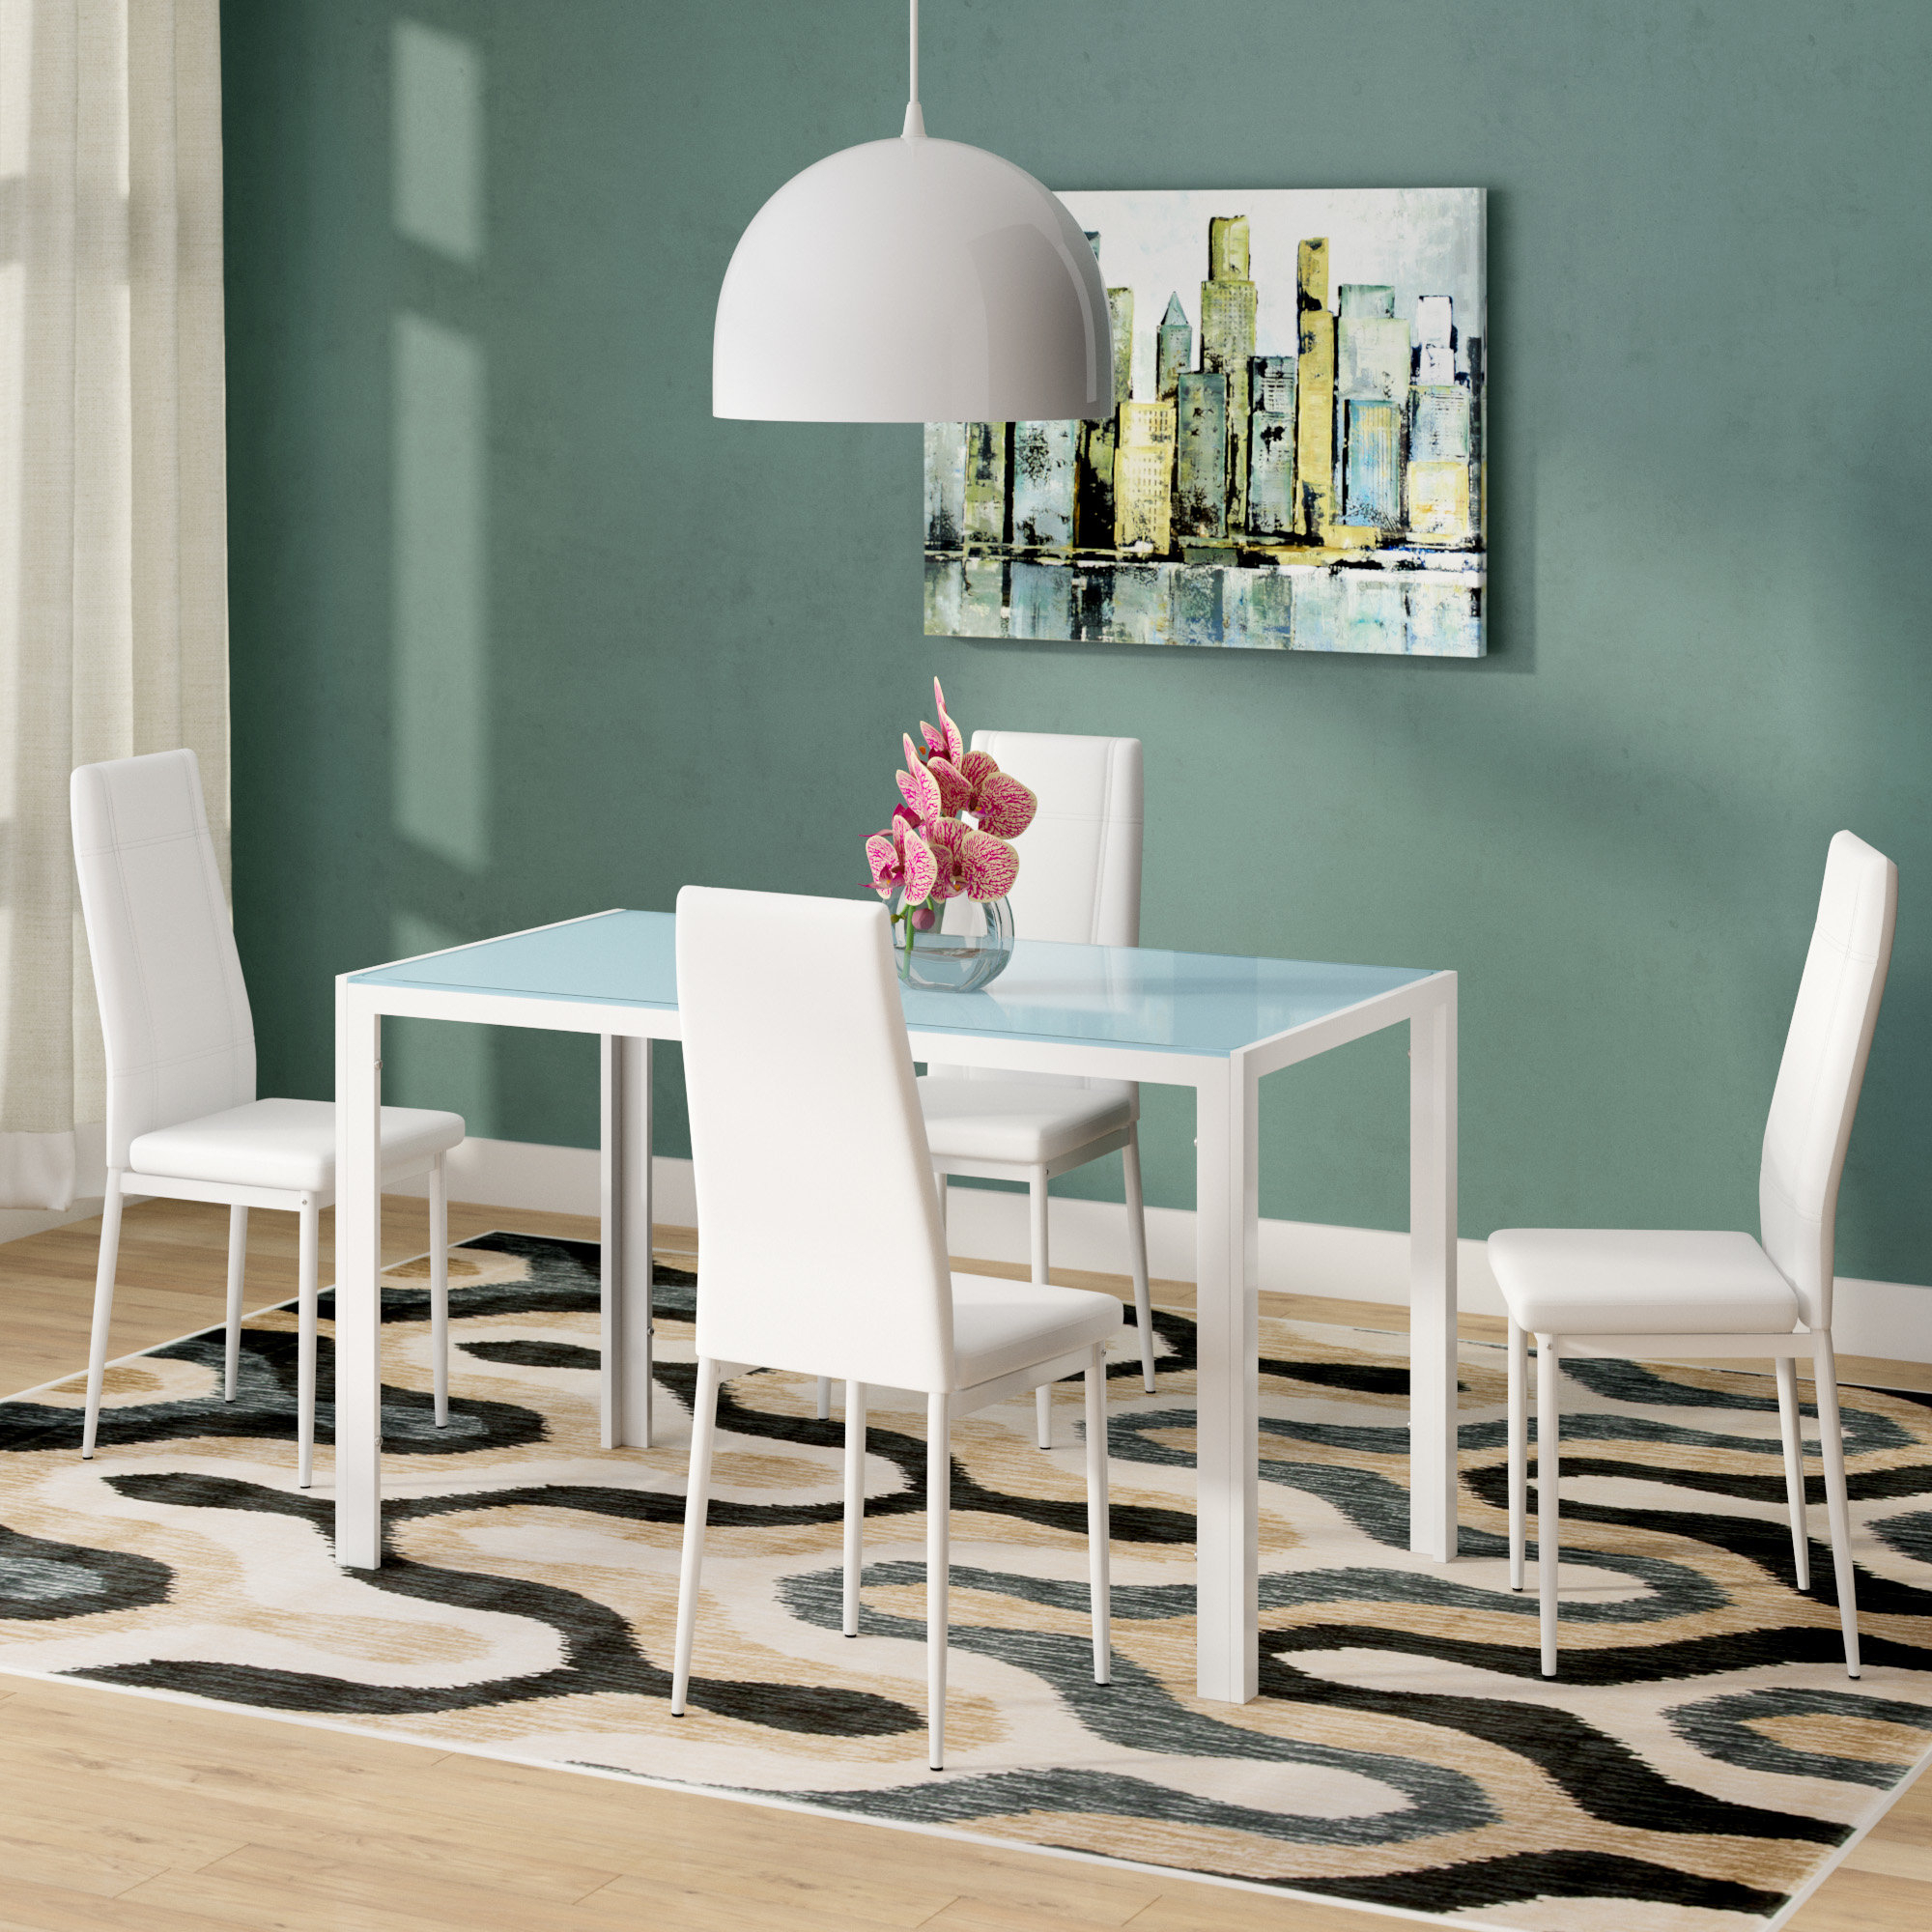 Travon 5 Piece Dining Sets With Regard To Latest Dimattia 5 Piece Dining Set (View 16 of 20)